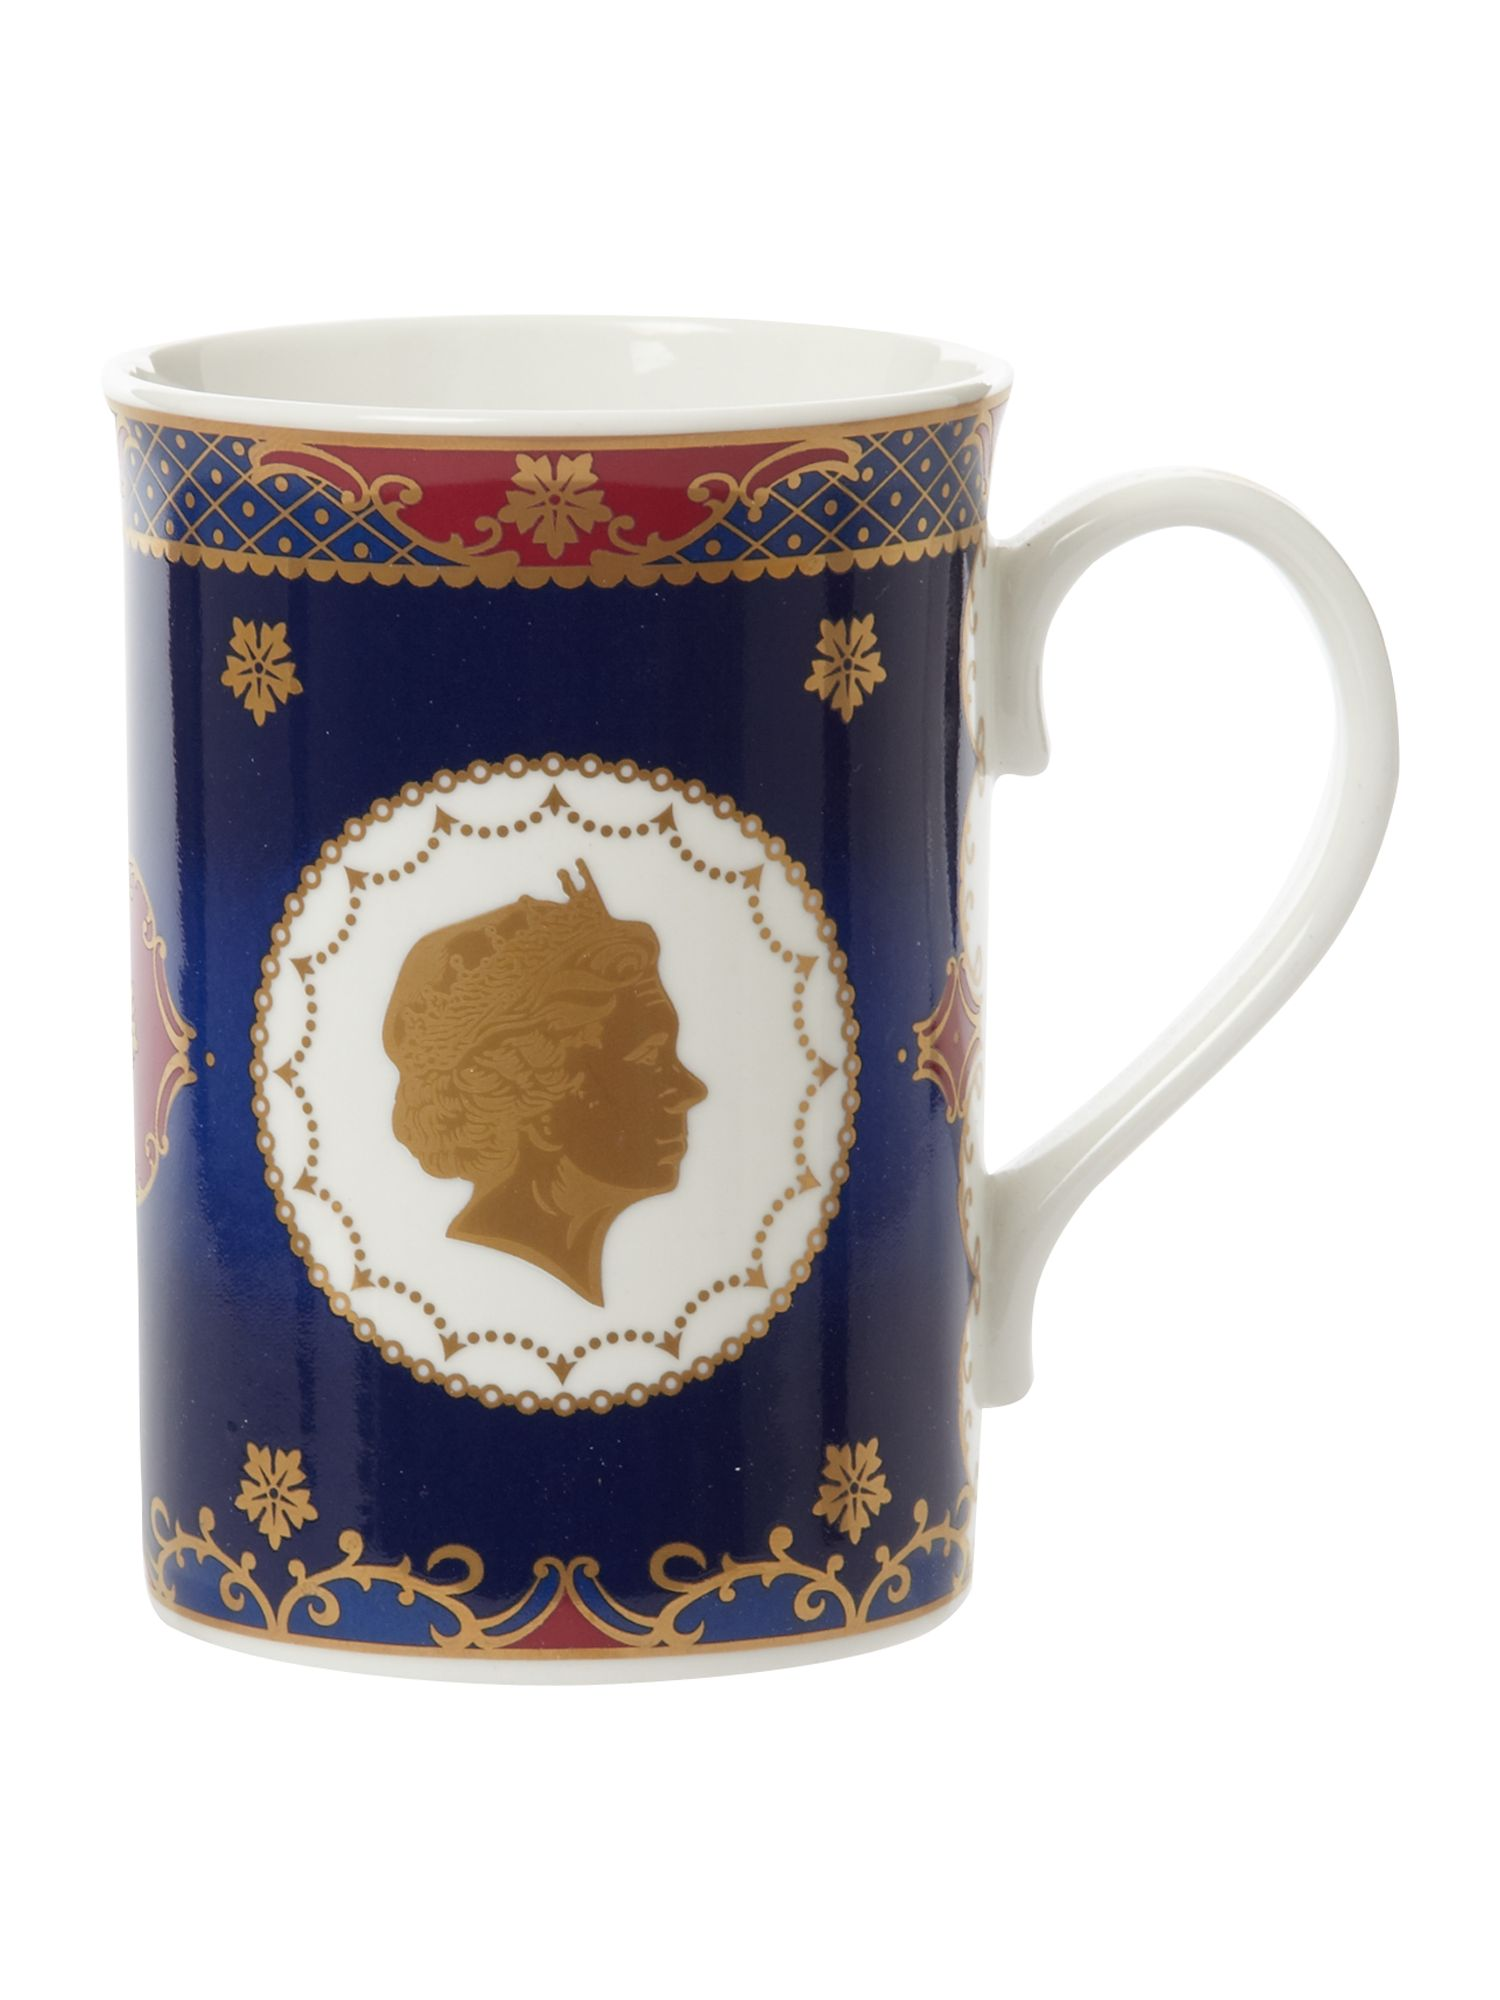 Royal Worcester Royal Worcester Royal coronation collection mug